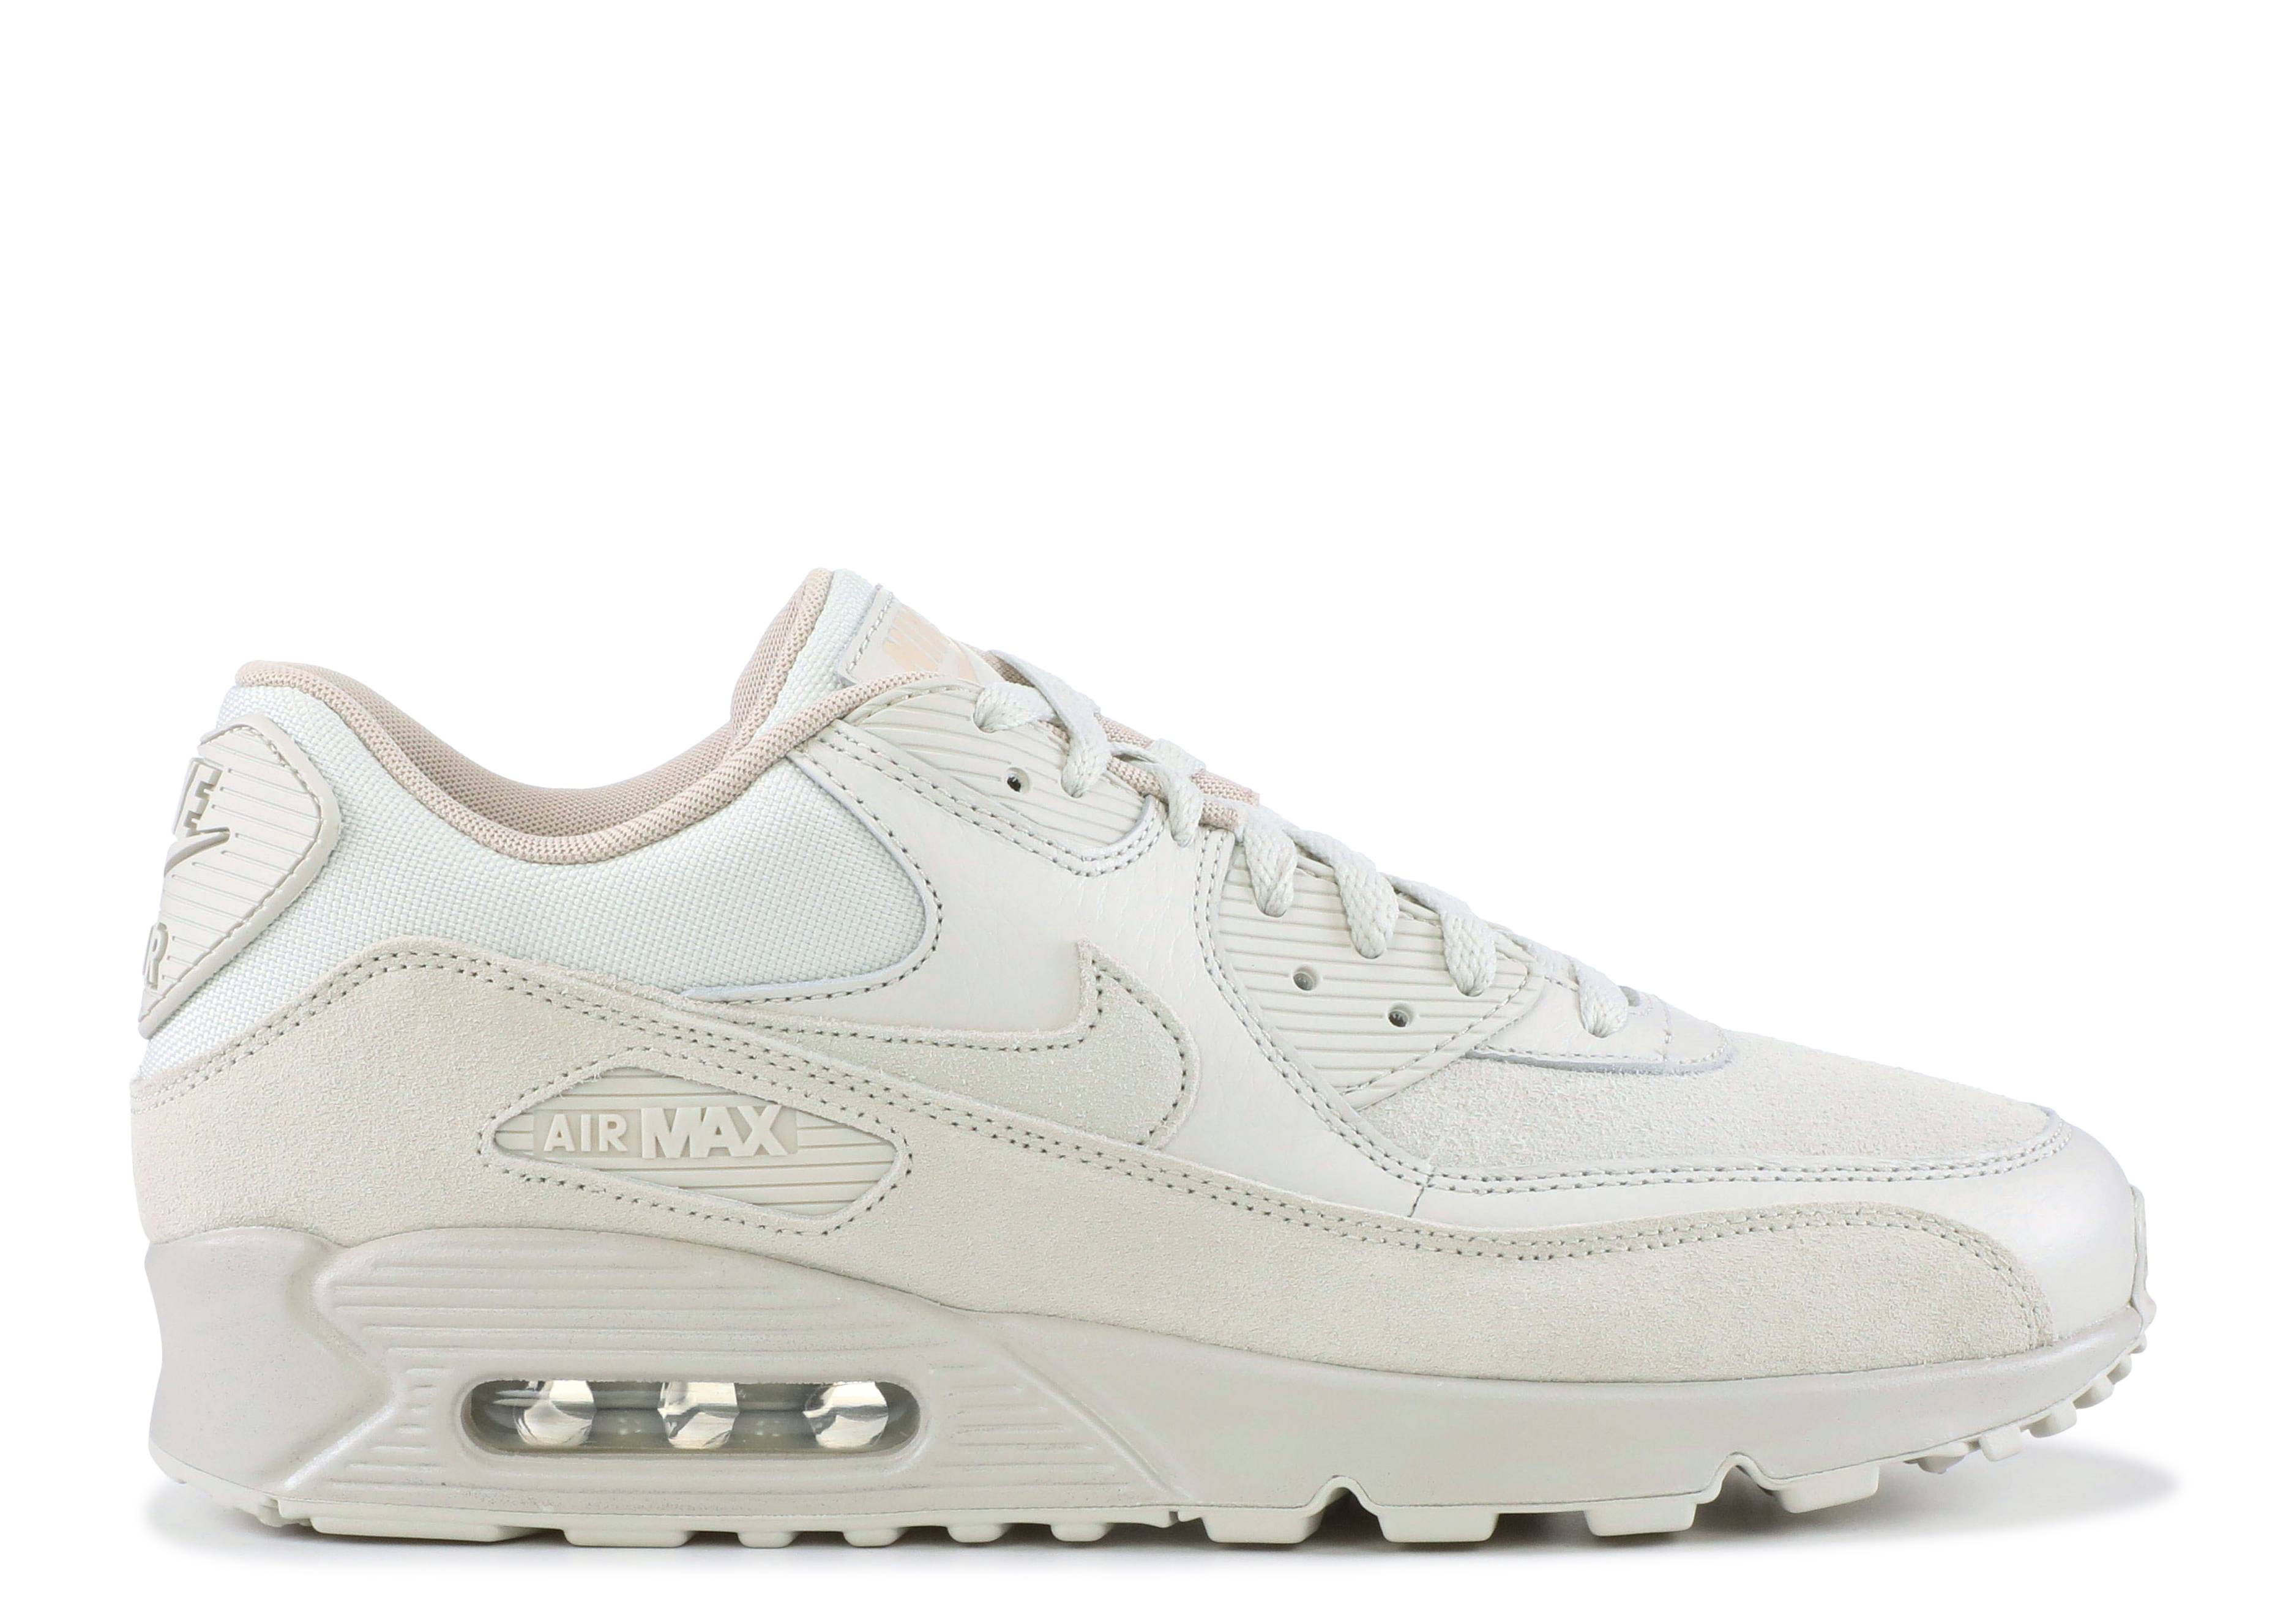 new product 7c31c bfc99 Nike Air Max 90 Premium